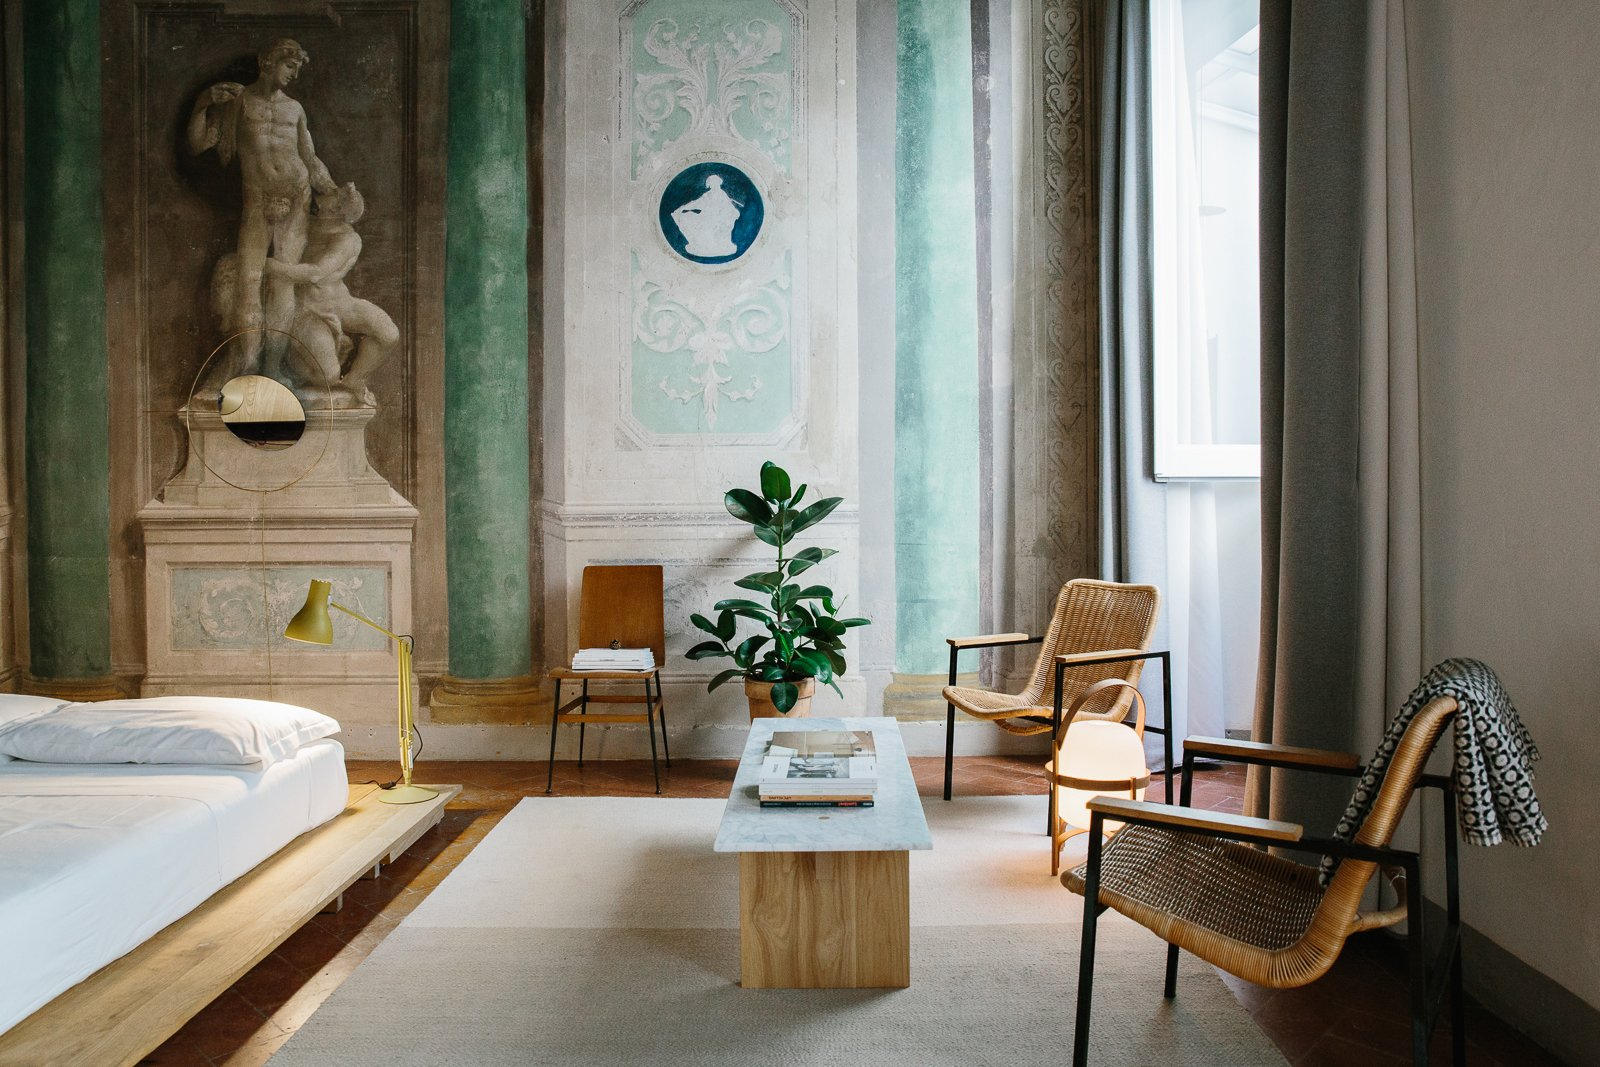 Bedroom, Floor, Table, Chair, Bed, Bench, Rug, and Lamps  Best Bedroom Bench Table Lamps Floor Chair Photos from A 16th-Century Florentine Palazzo Is Transformed Into an Artist Residency